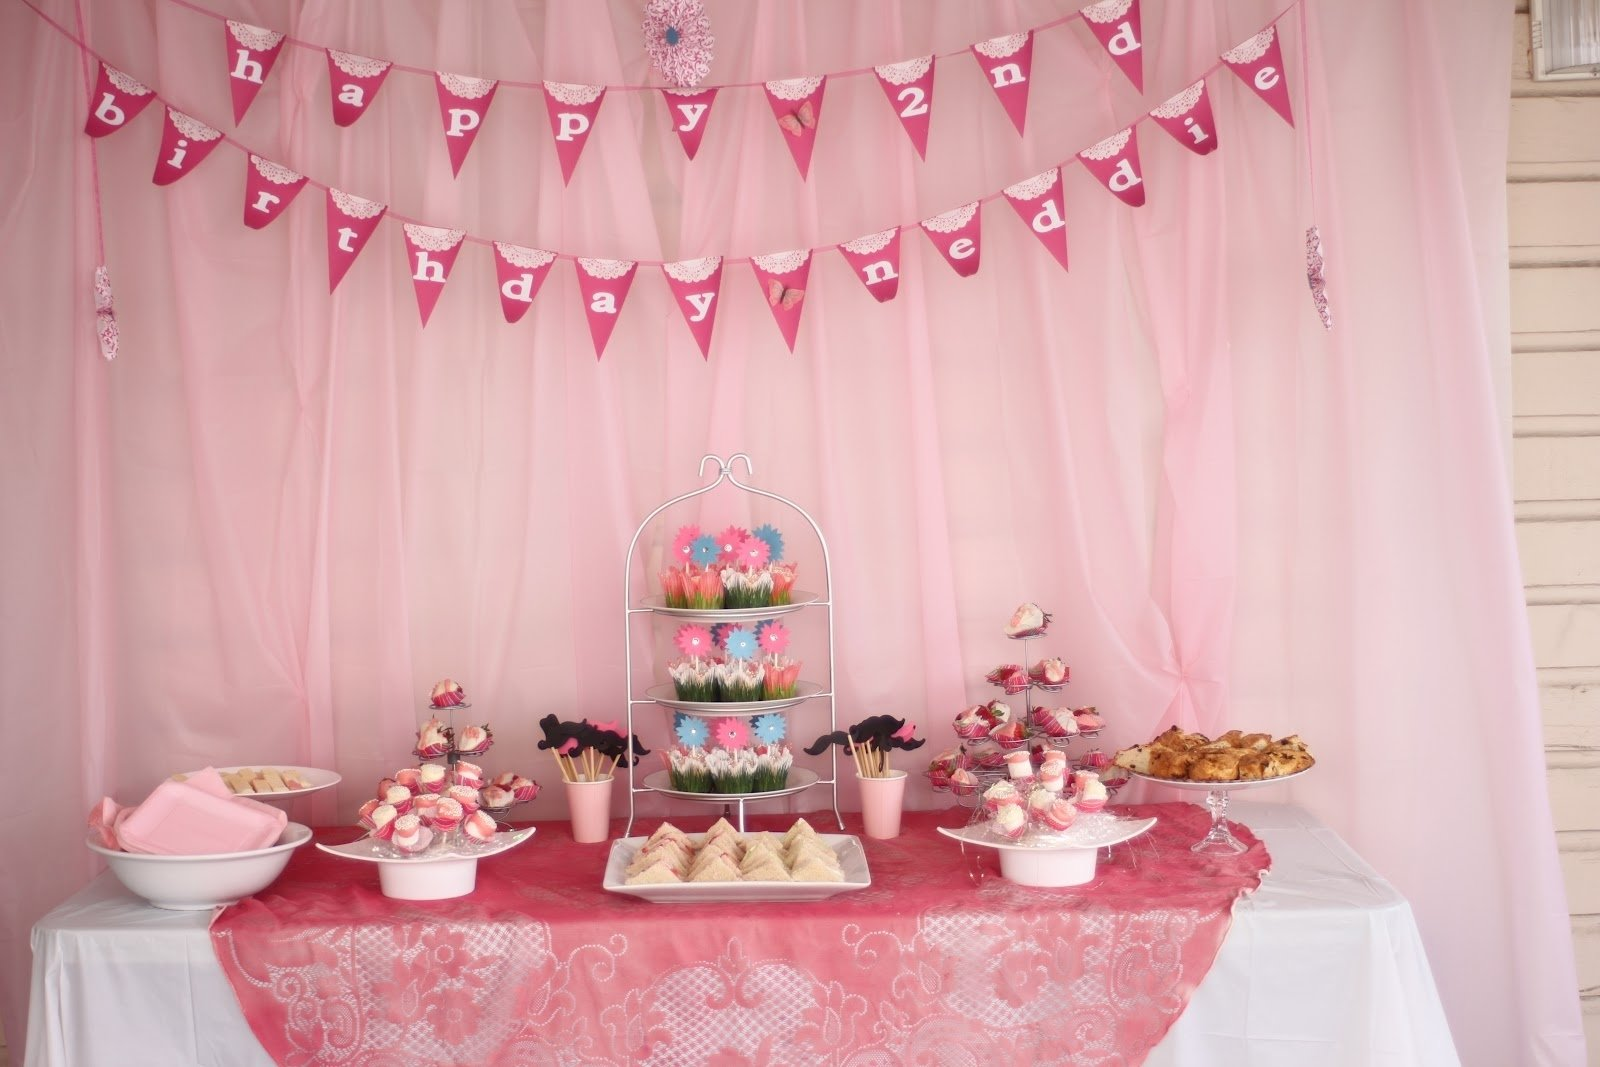 10 Ideal 2 Yr Old Birthday Ideas Year Decorations Image Inspiration Of Cake